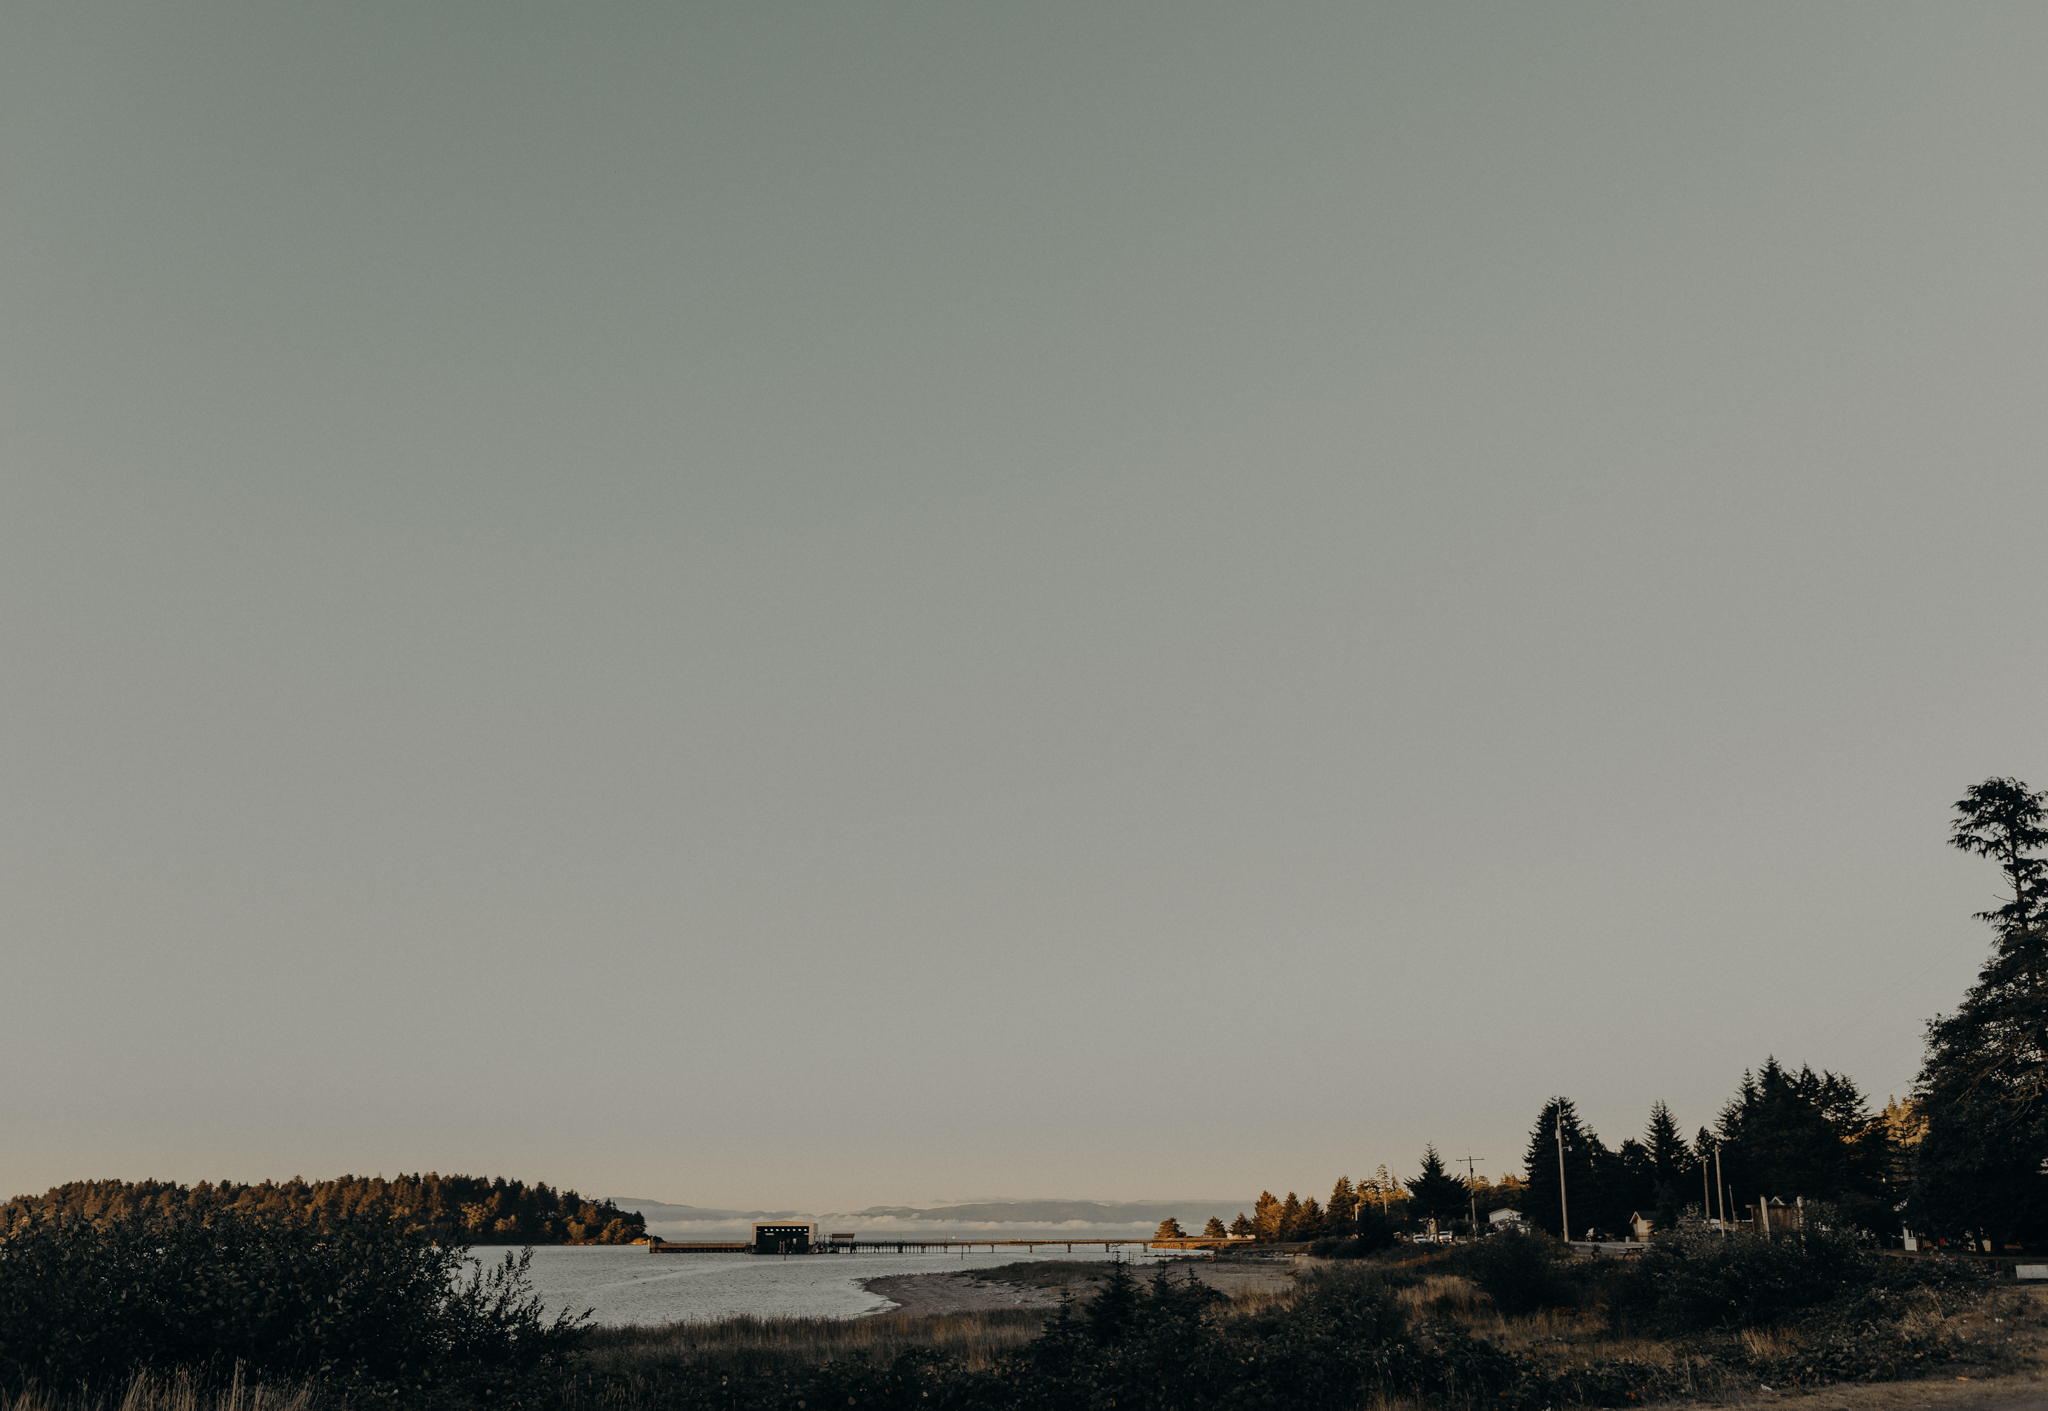 Isaiah + Taylor Photography - Cape Flattery Elopement, Olympia National Forest Wedding Photographer-131.jpg